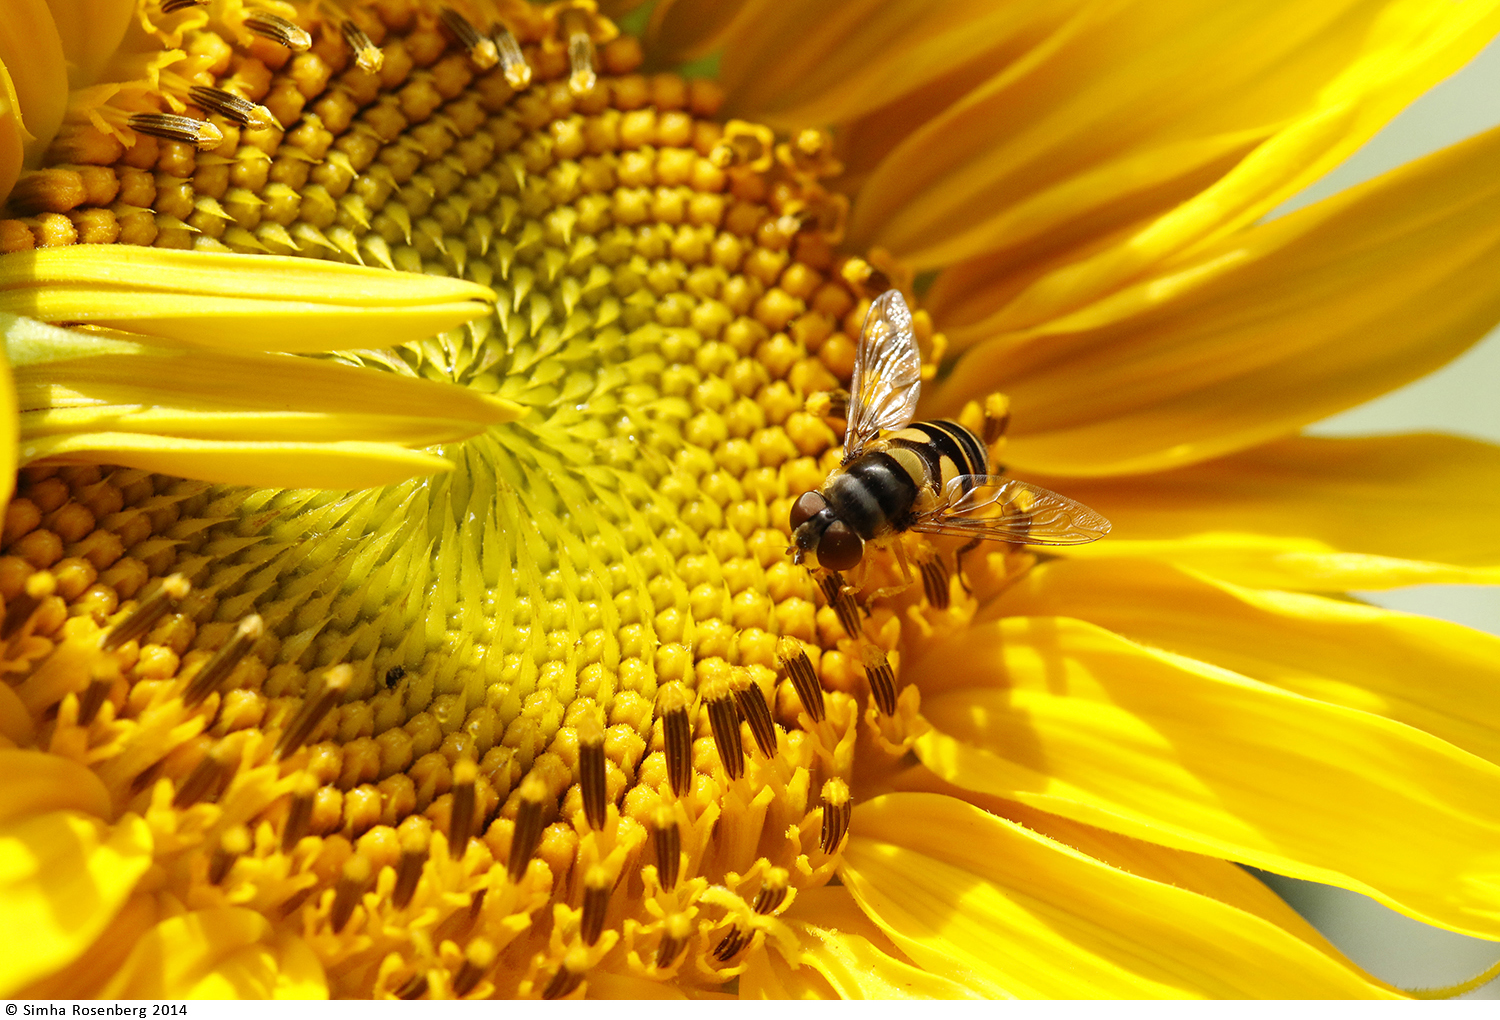 Photo of a bee intently pollinating a deep yellow sunflower illustrates the pollination as a nonprofit marketing metaphor.